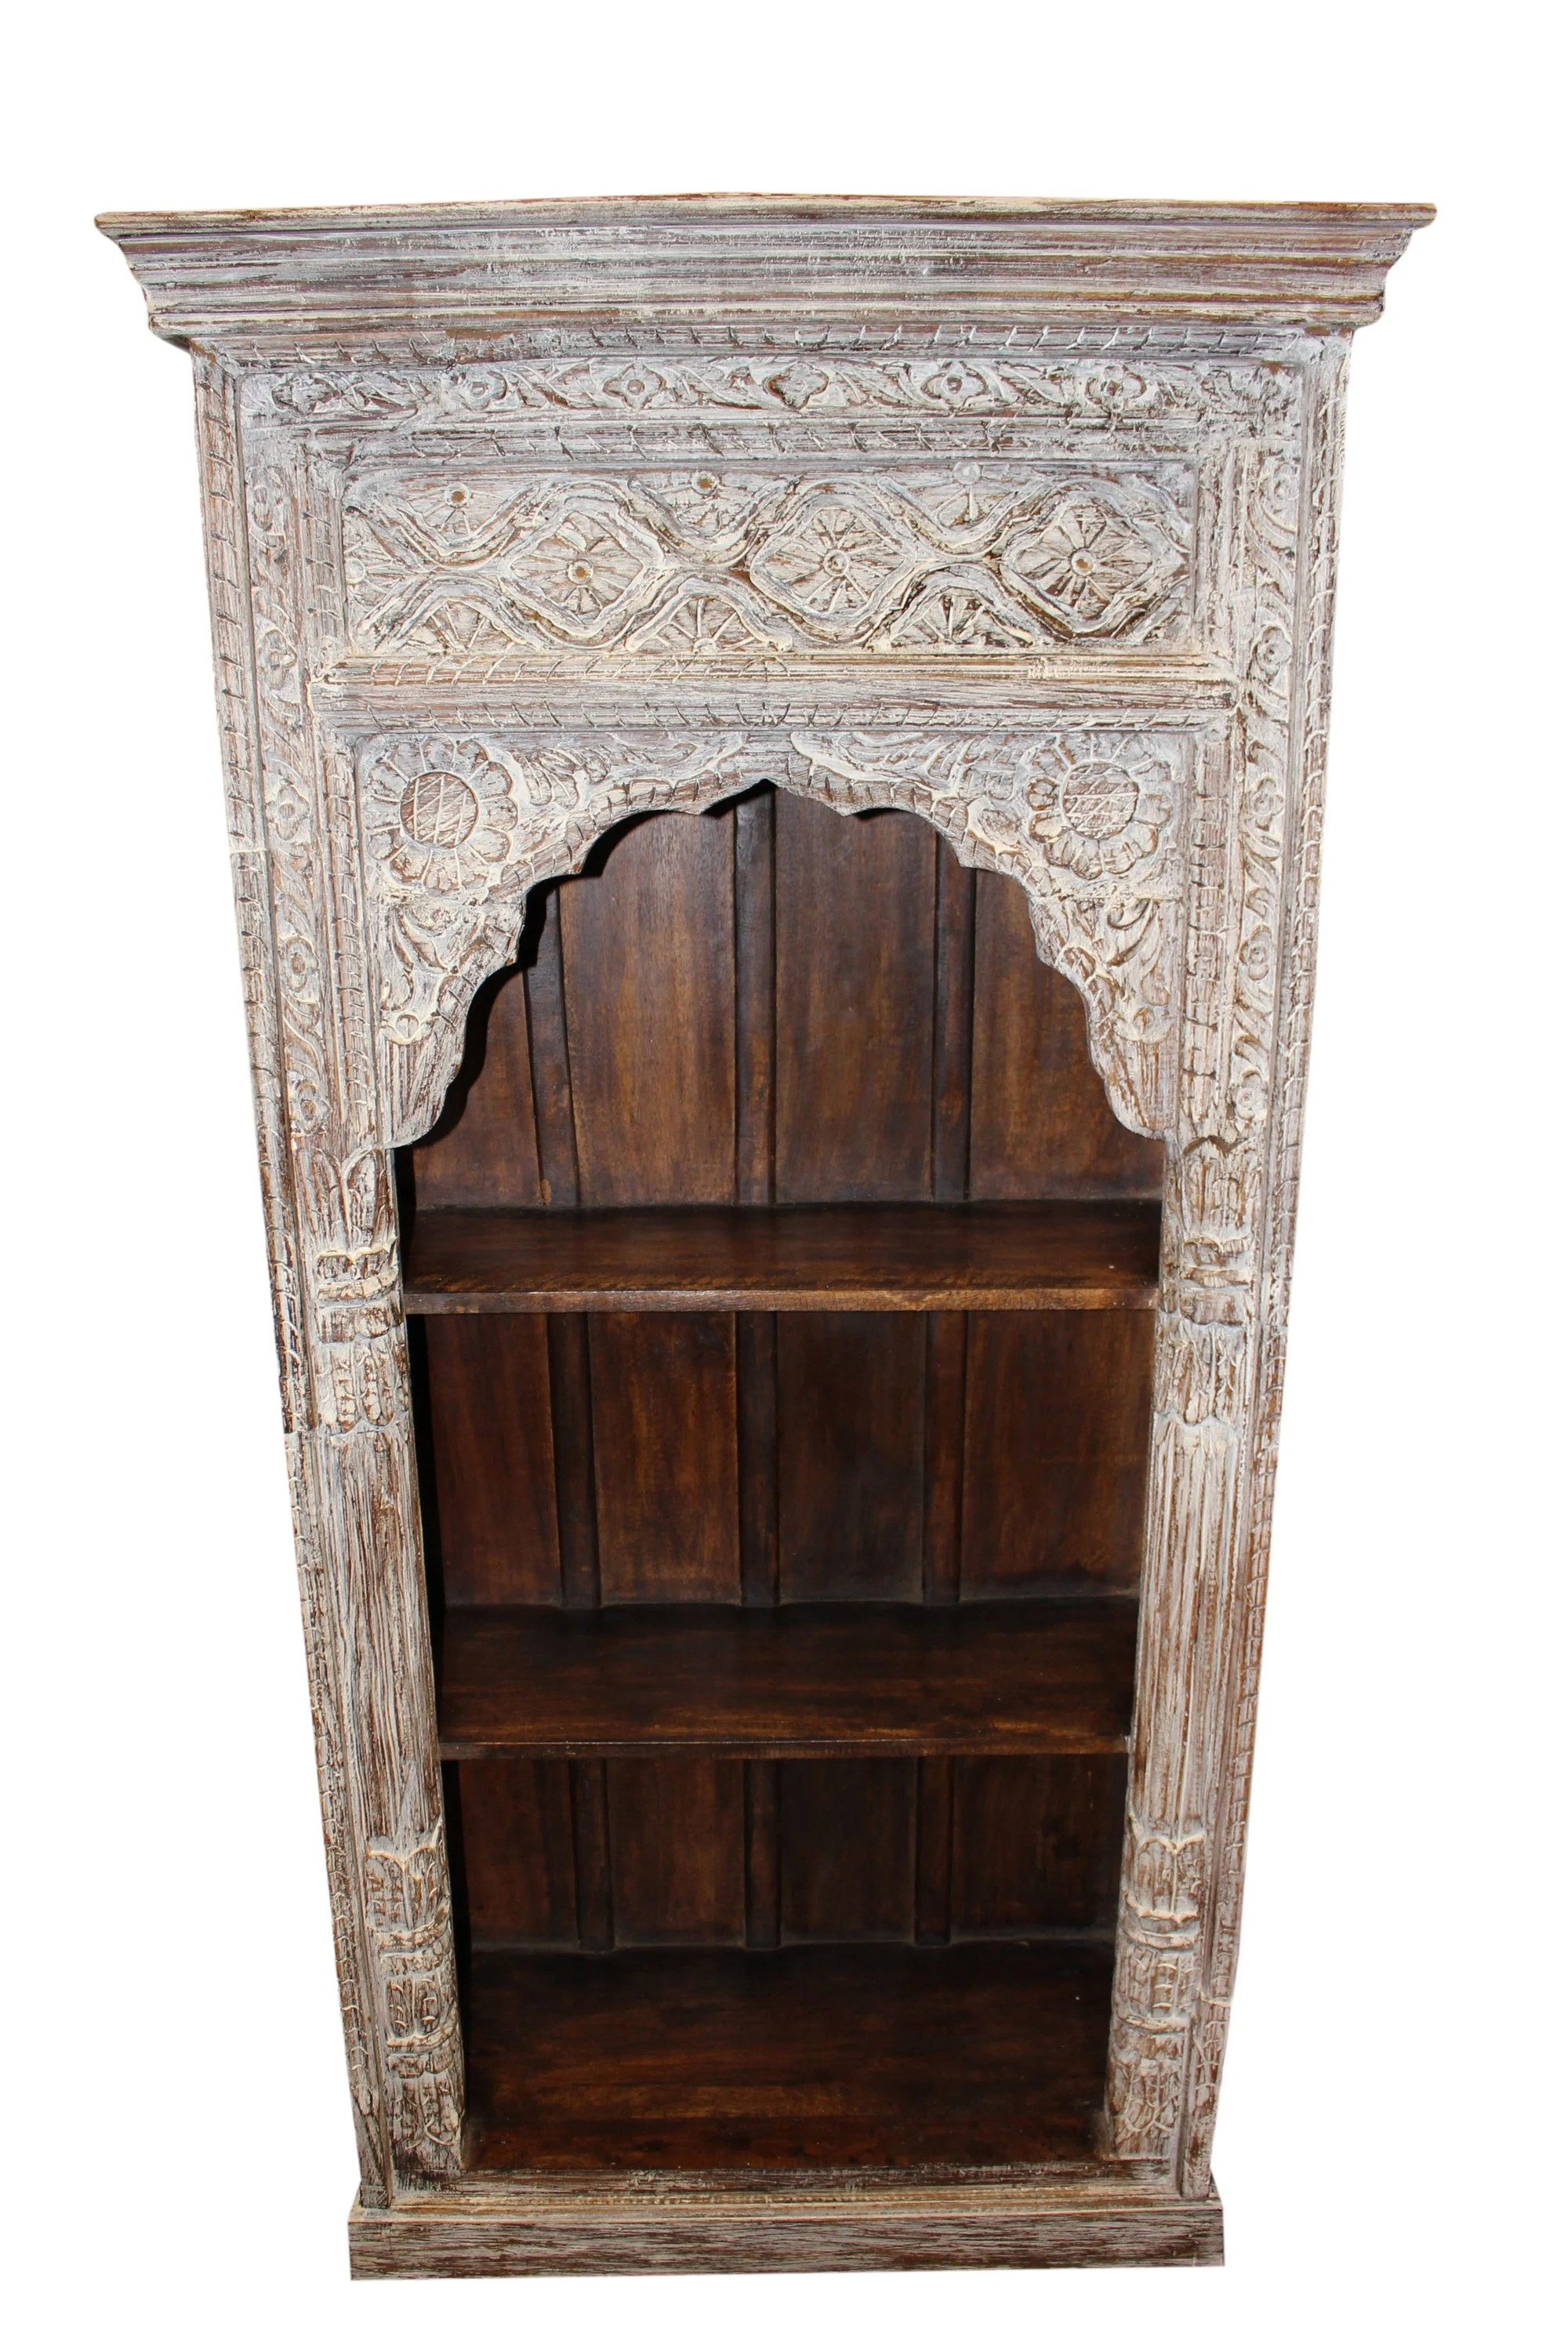 Vintage Bookcase Antique Indian Arched Bookcase Ivory White Wood Book Shelf Vintage Storage Home Decor